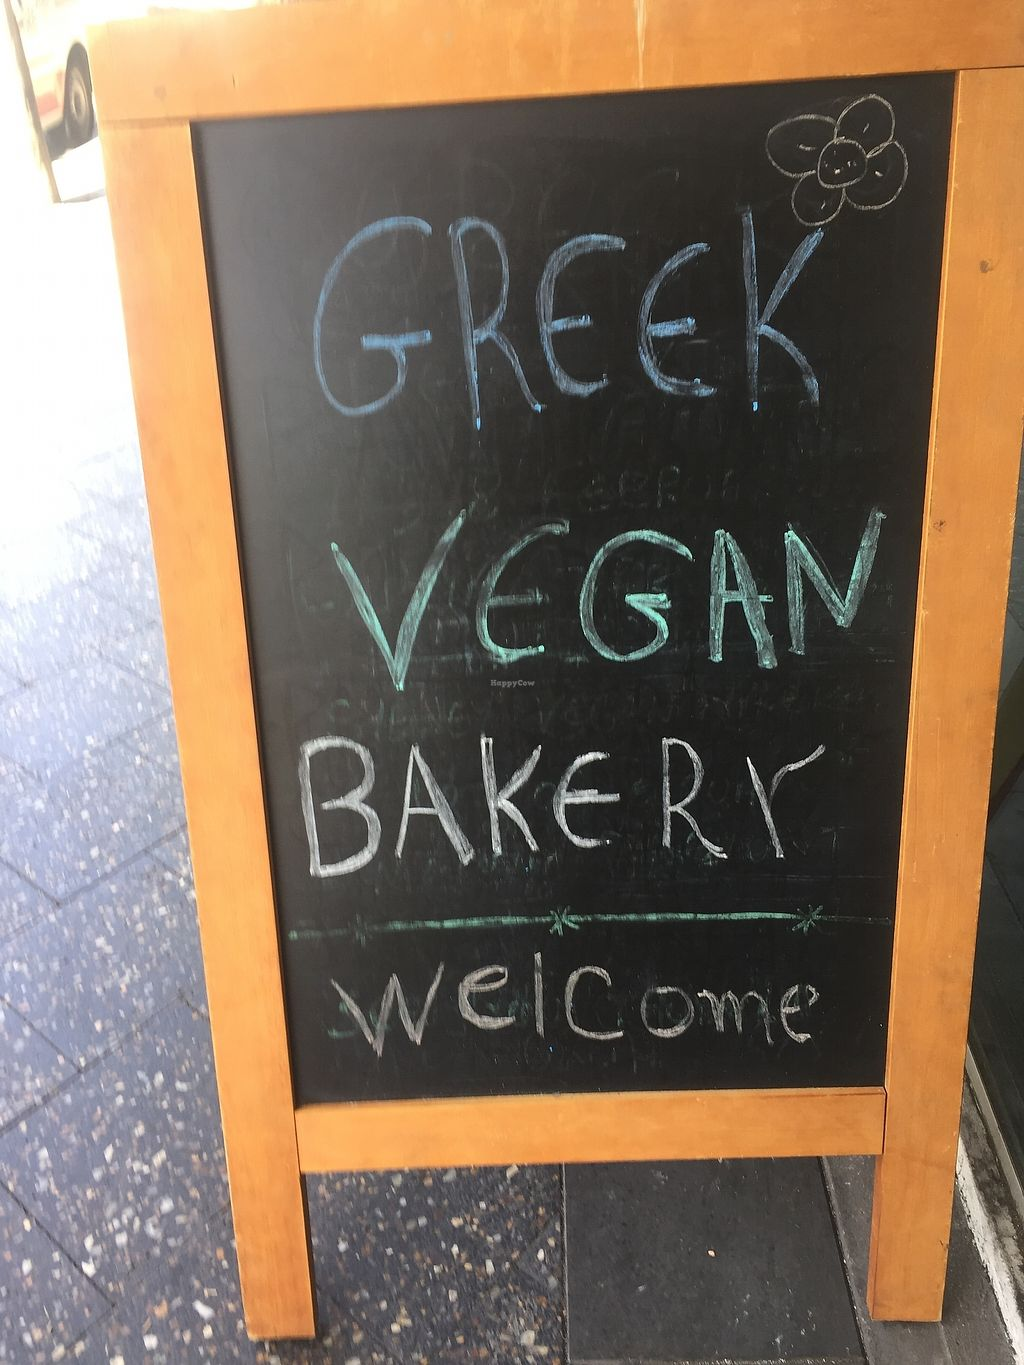 """Photo of Greek Vegan Bakery  by <a href=""""/members/profile/Kittybiscuit"""">Kittybiscuit</a> <br/>Sign <br/> March 24, 2018  - <a href='/contact/abuse/image/115482/375095'>Report</a>"""